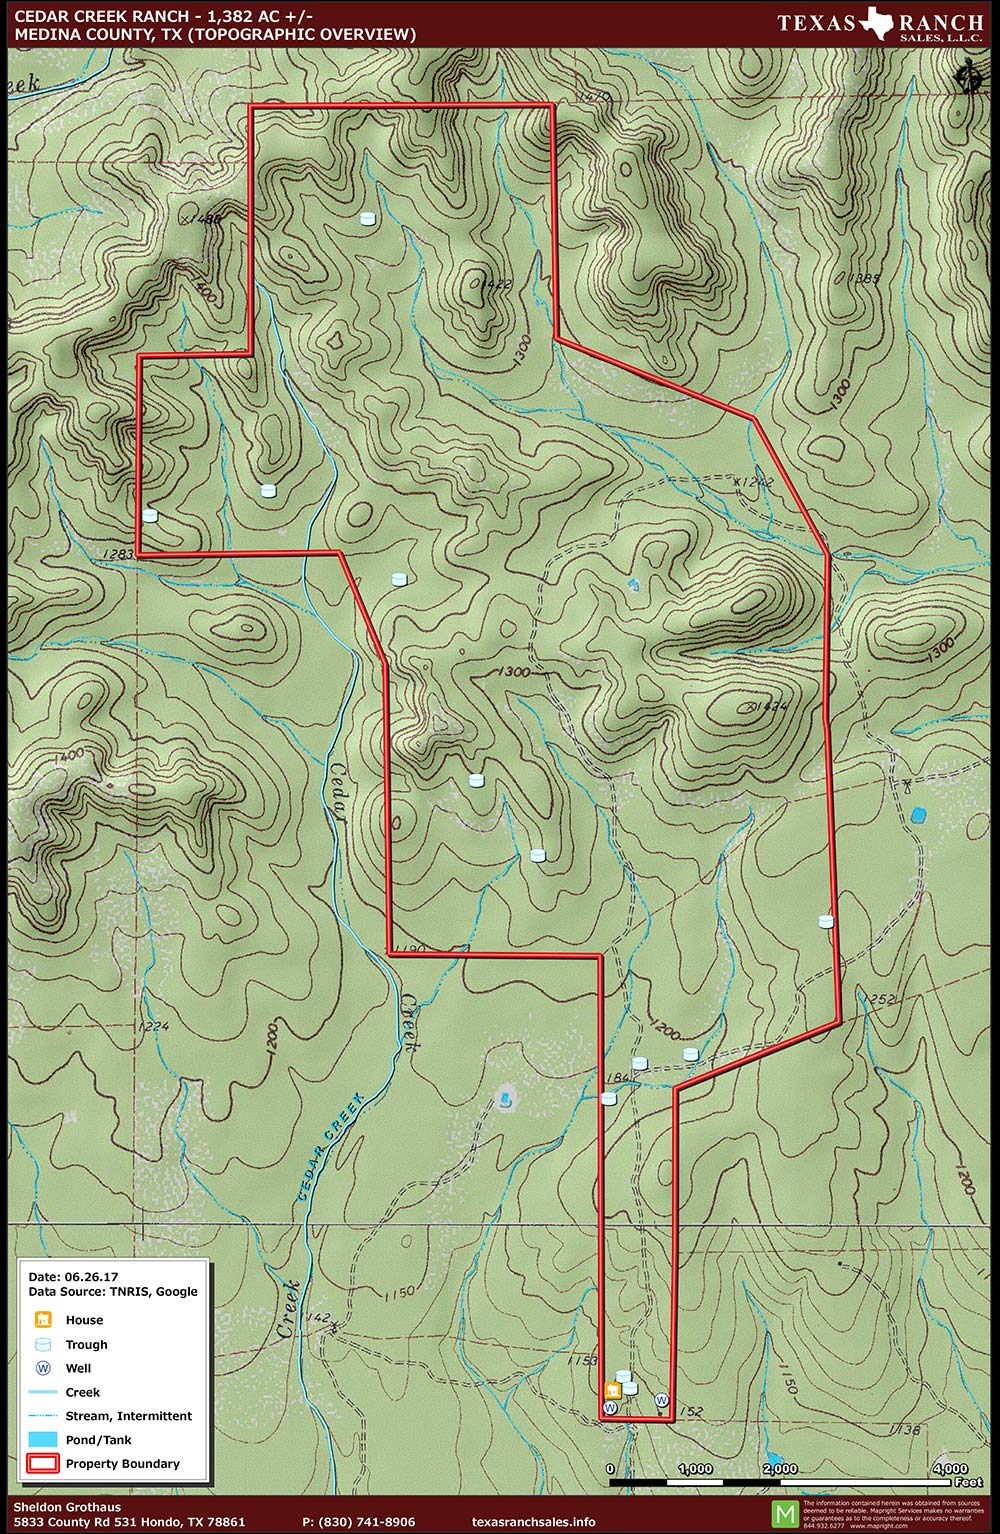 1382 Acre Ranch Medina Topography Map